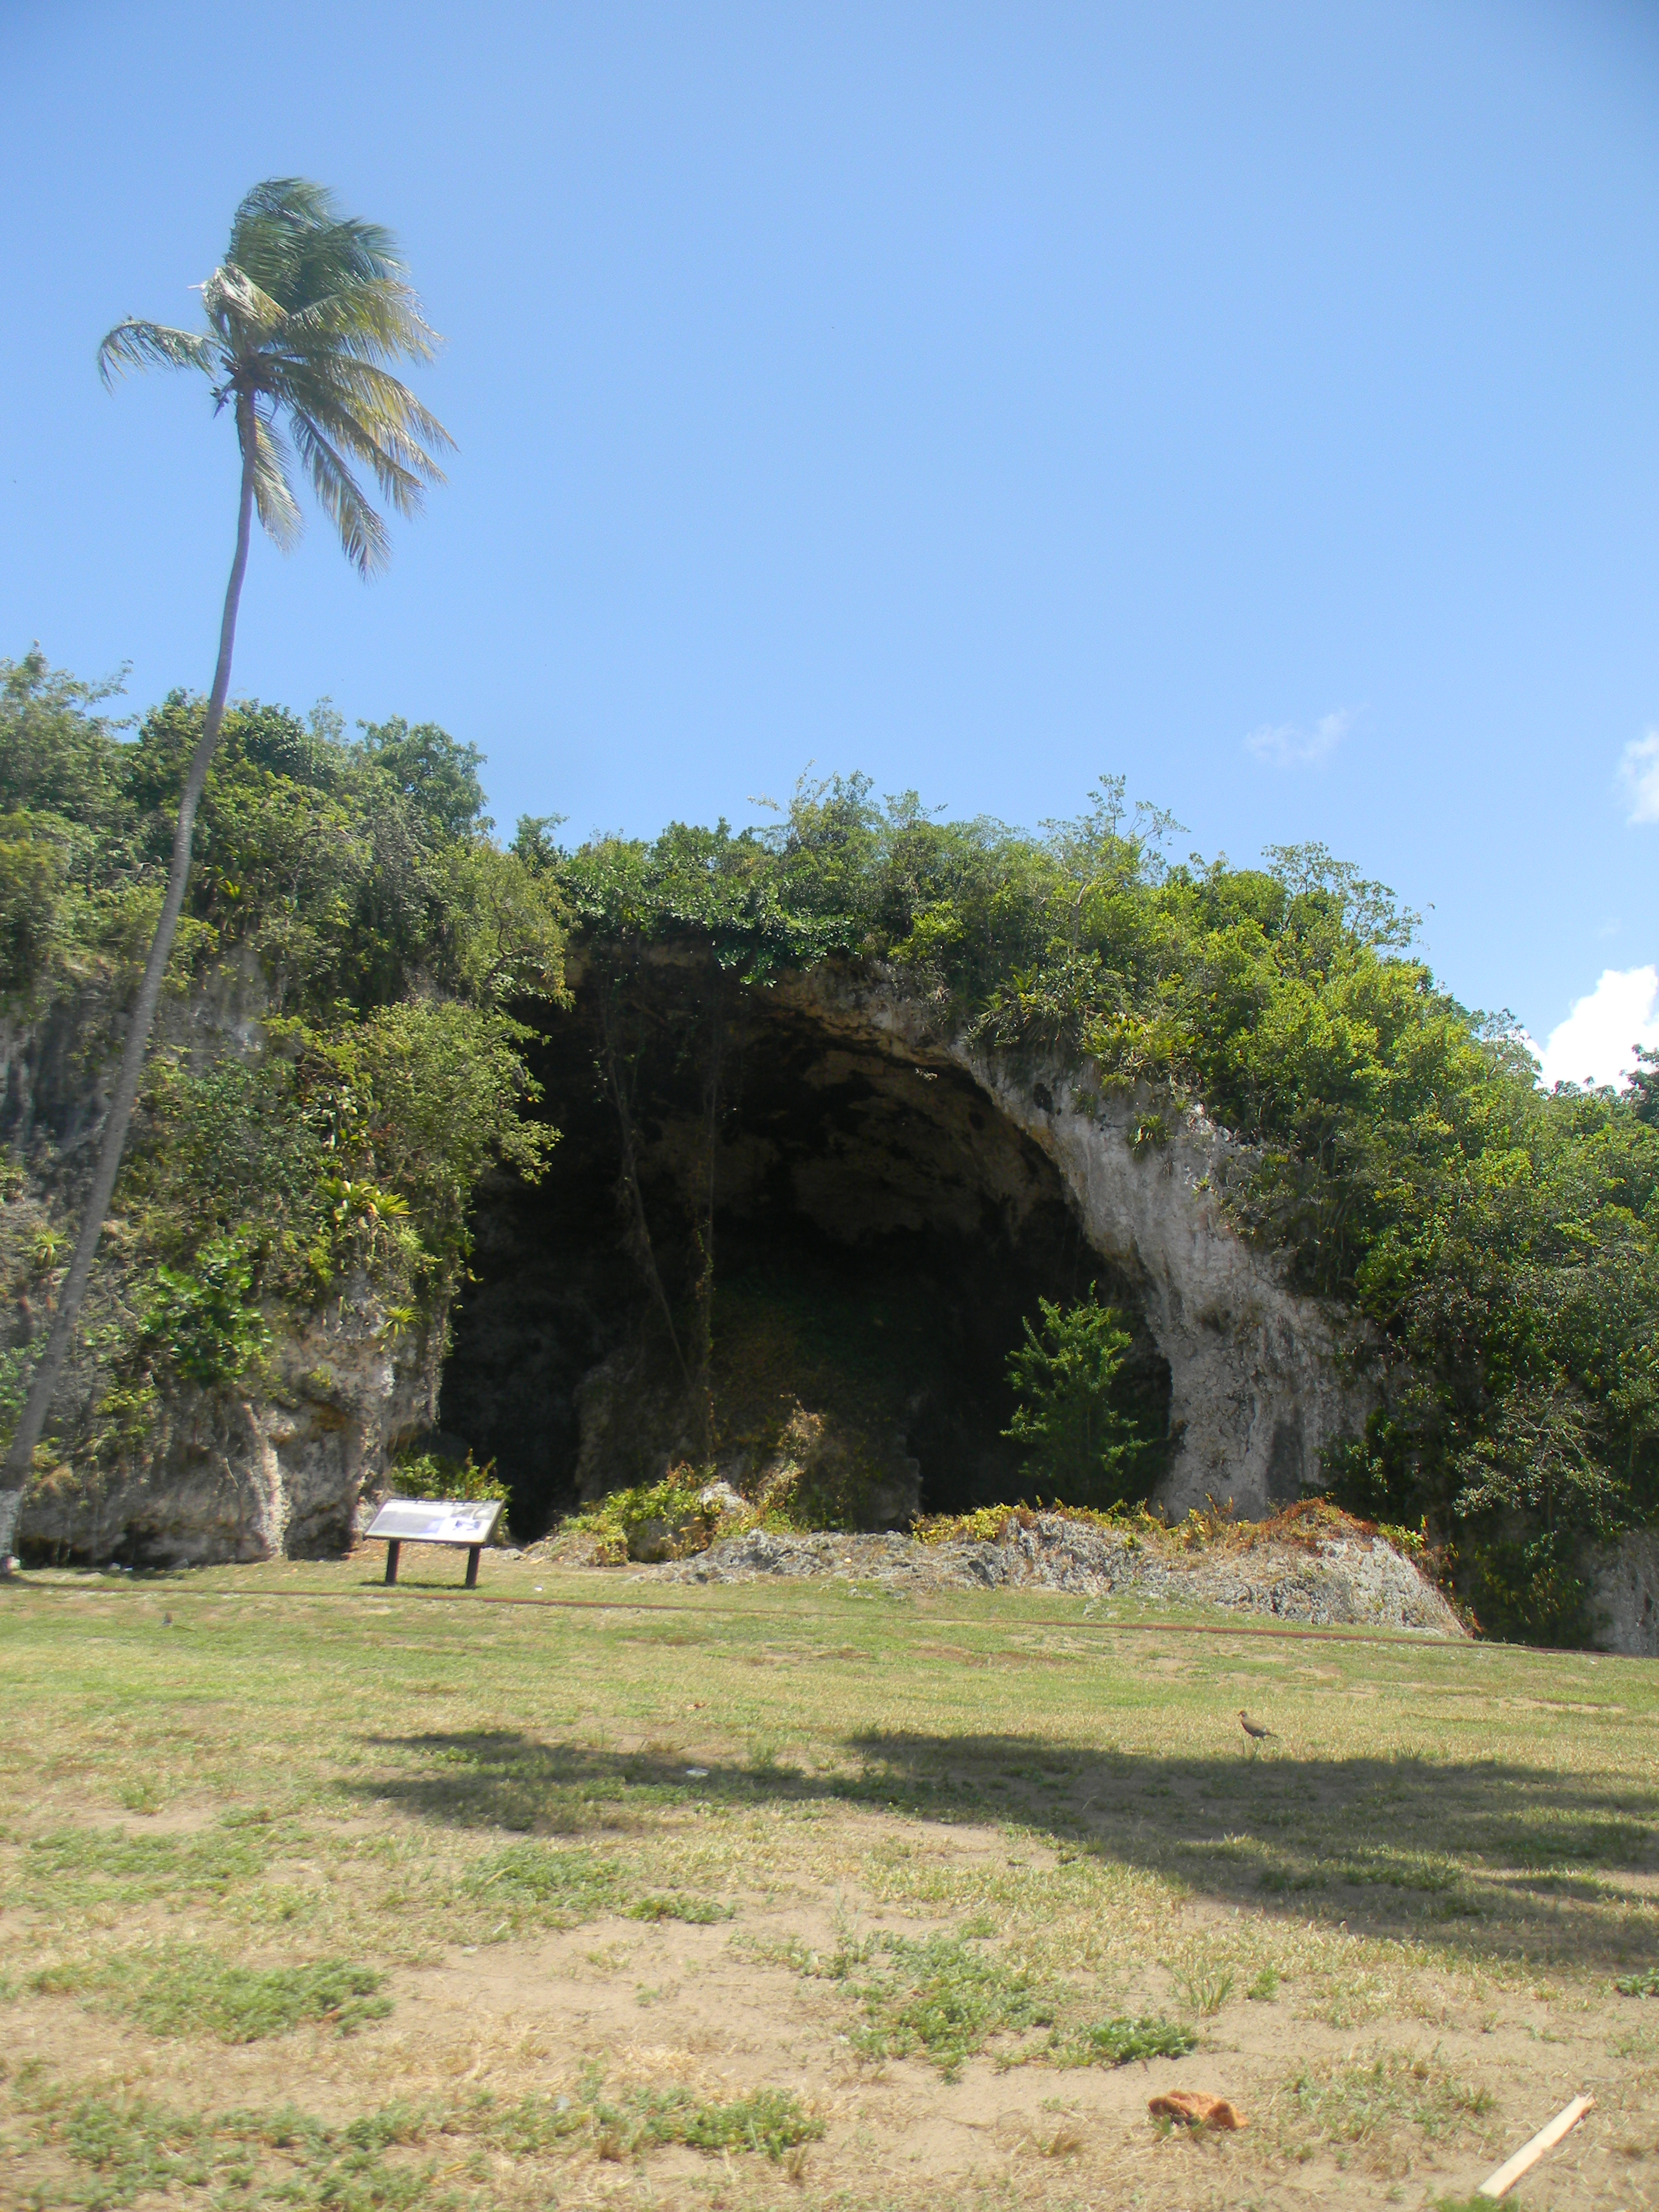 The María de la Cruz cave has become a historical place because it represents the history of the Taíno Indians.